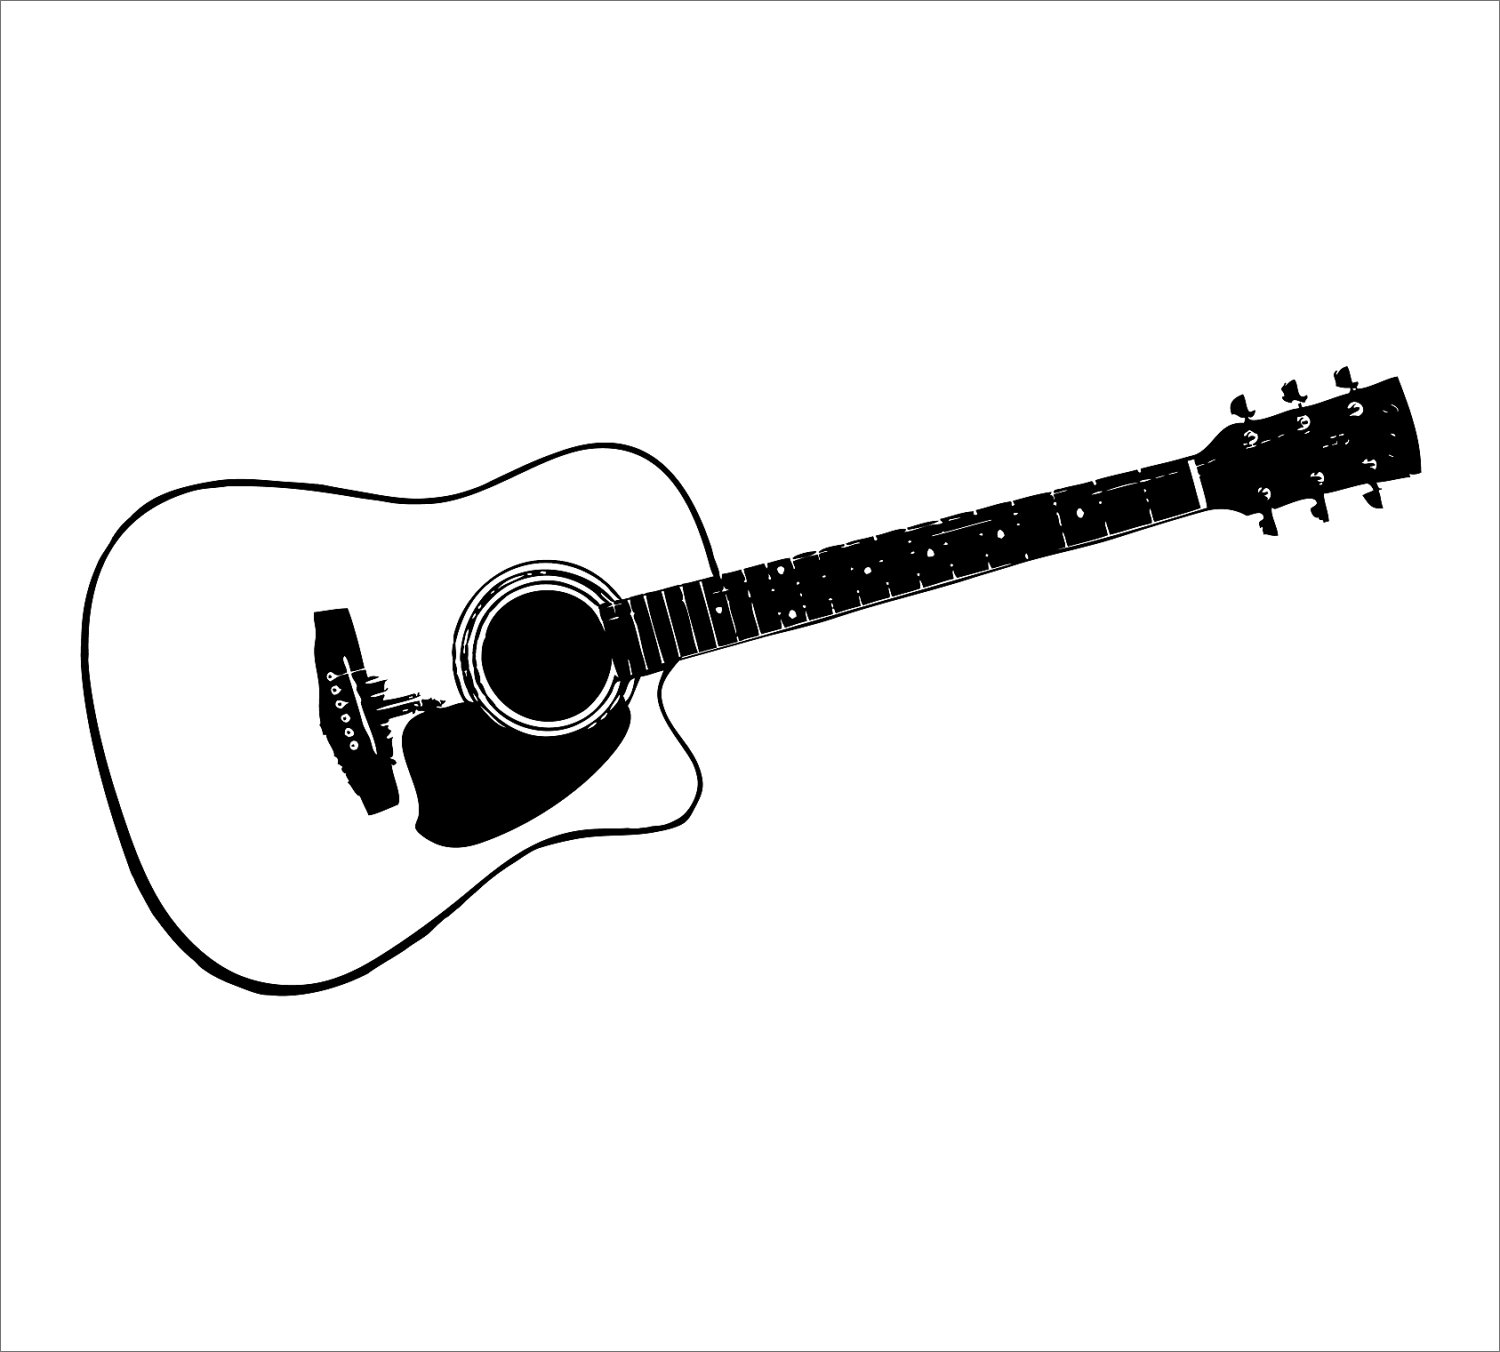 Acoustic guitar clipart black and white